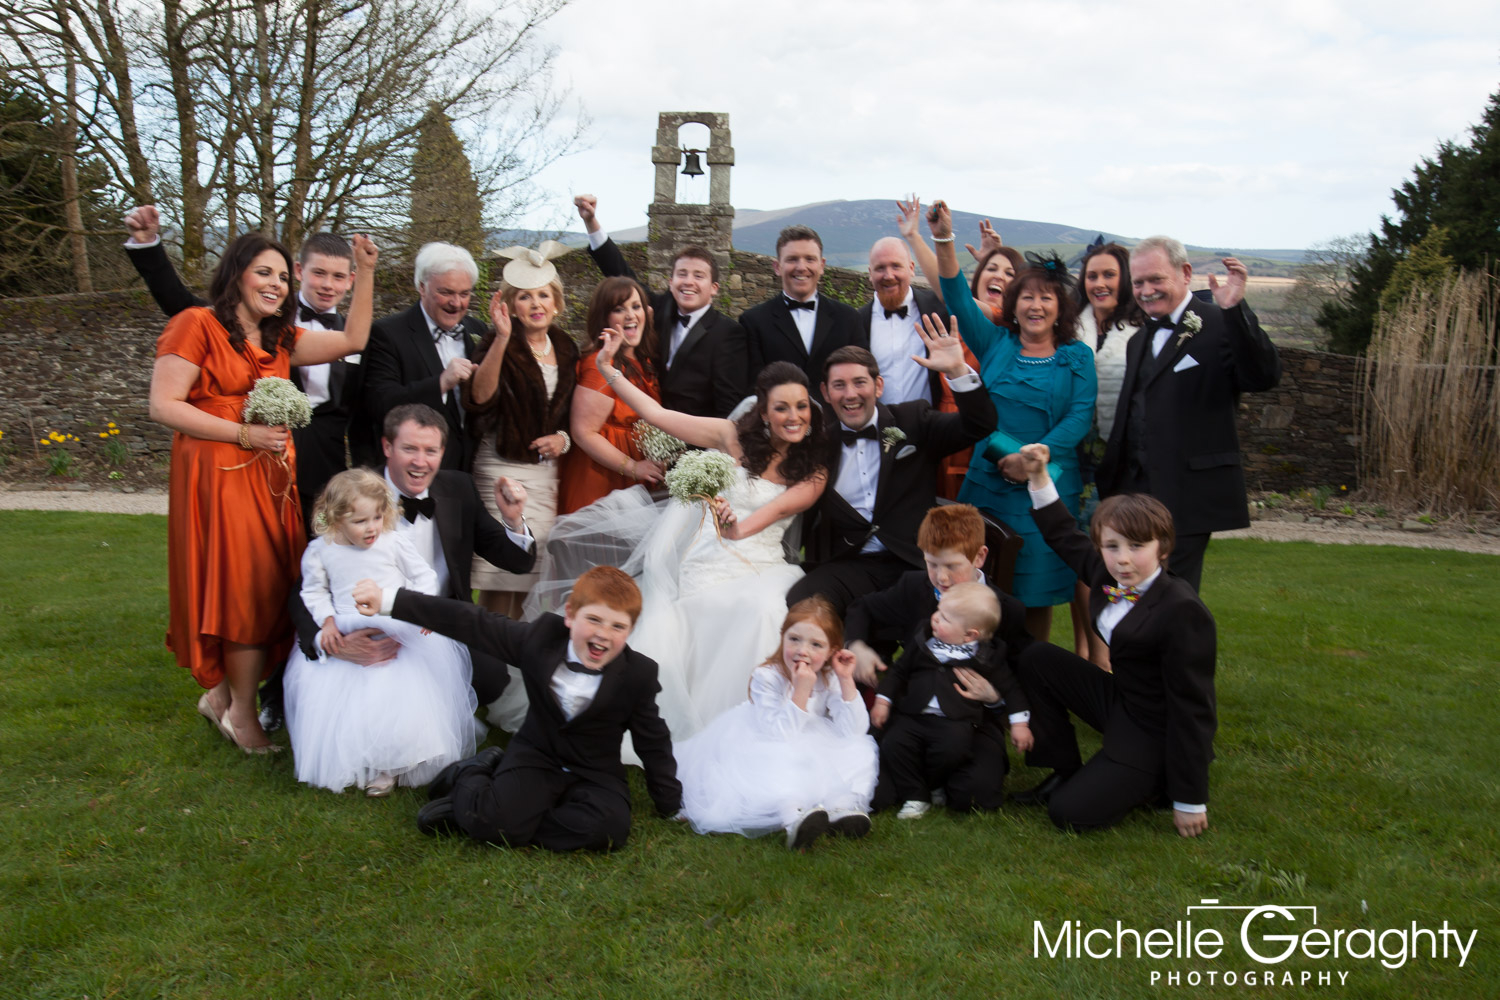 1507-Michelle Geraghty Photography_Mary & Connal-IMG_4026.jpg